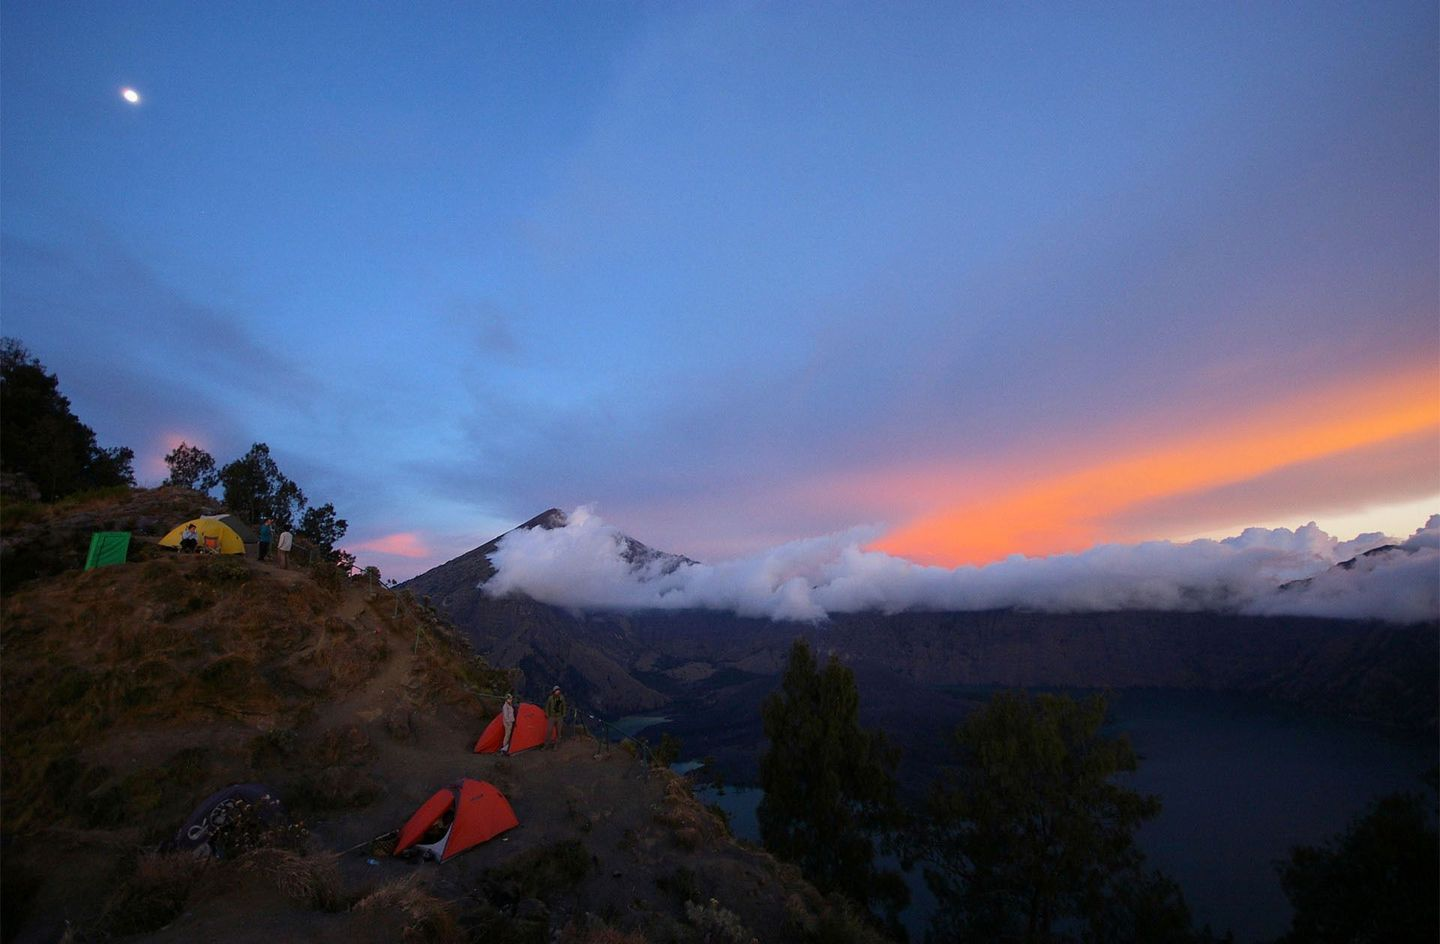 Indonesia%20mt%20rinjani%20in%20lombok%20by%20alister%20munro